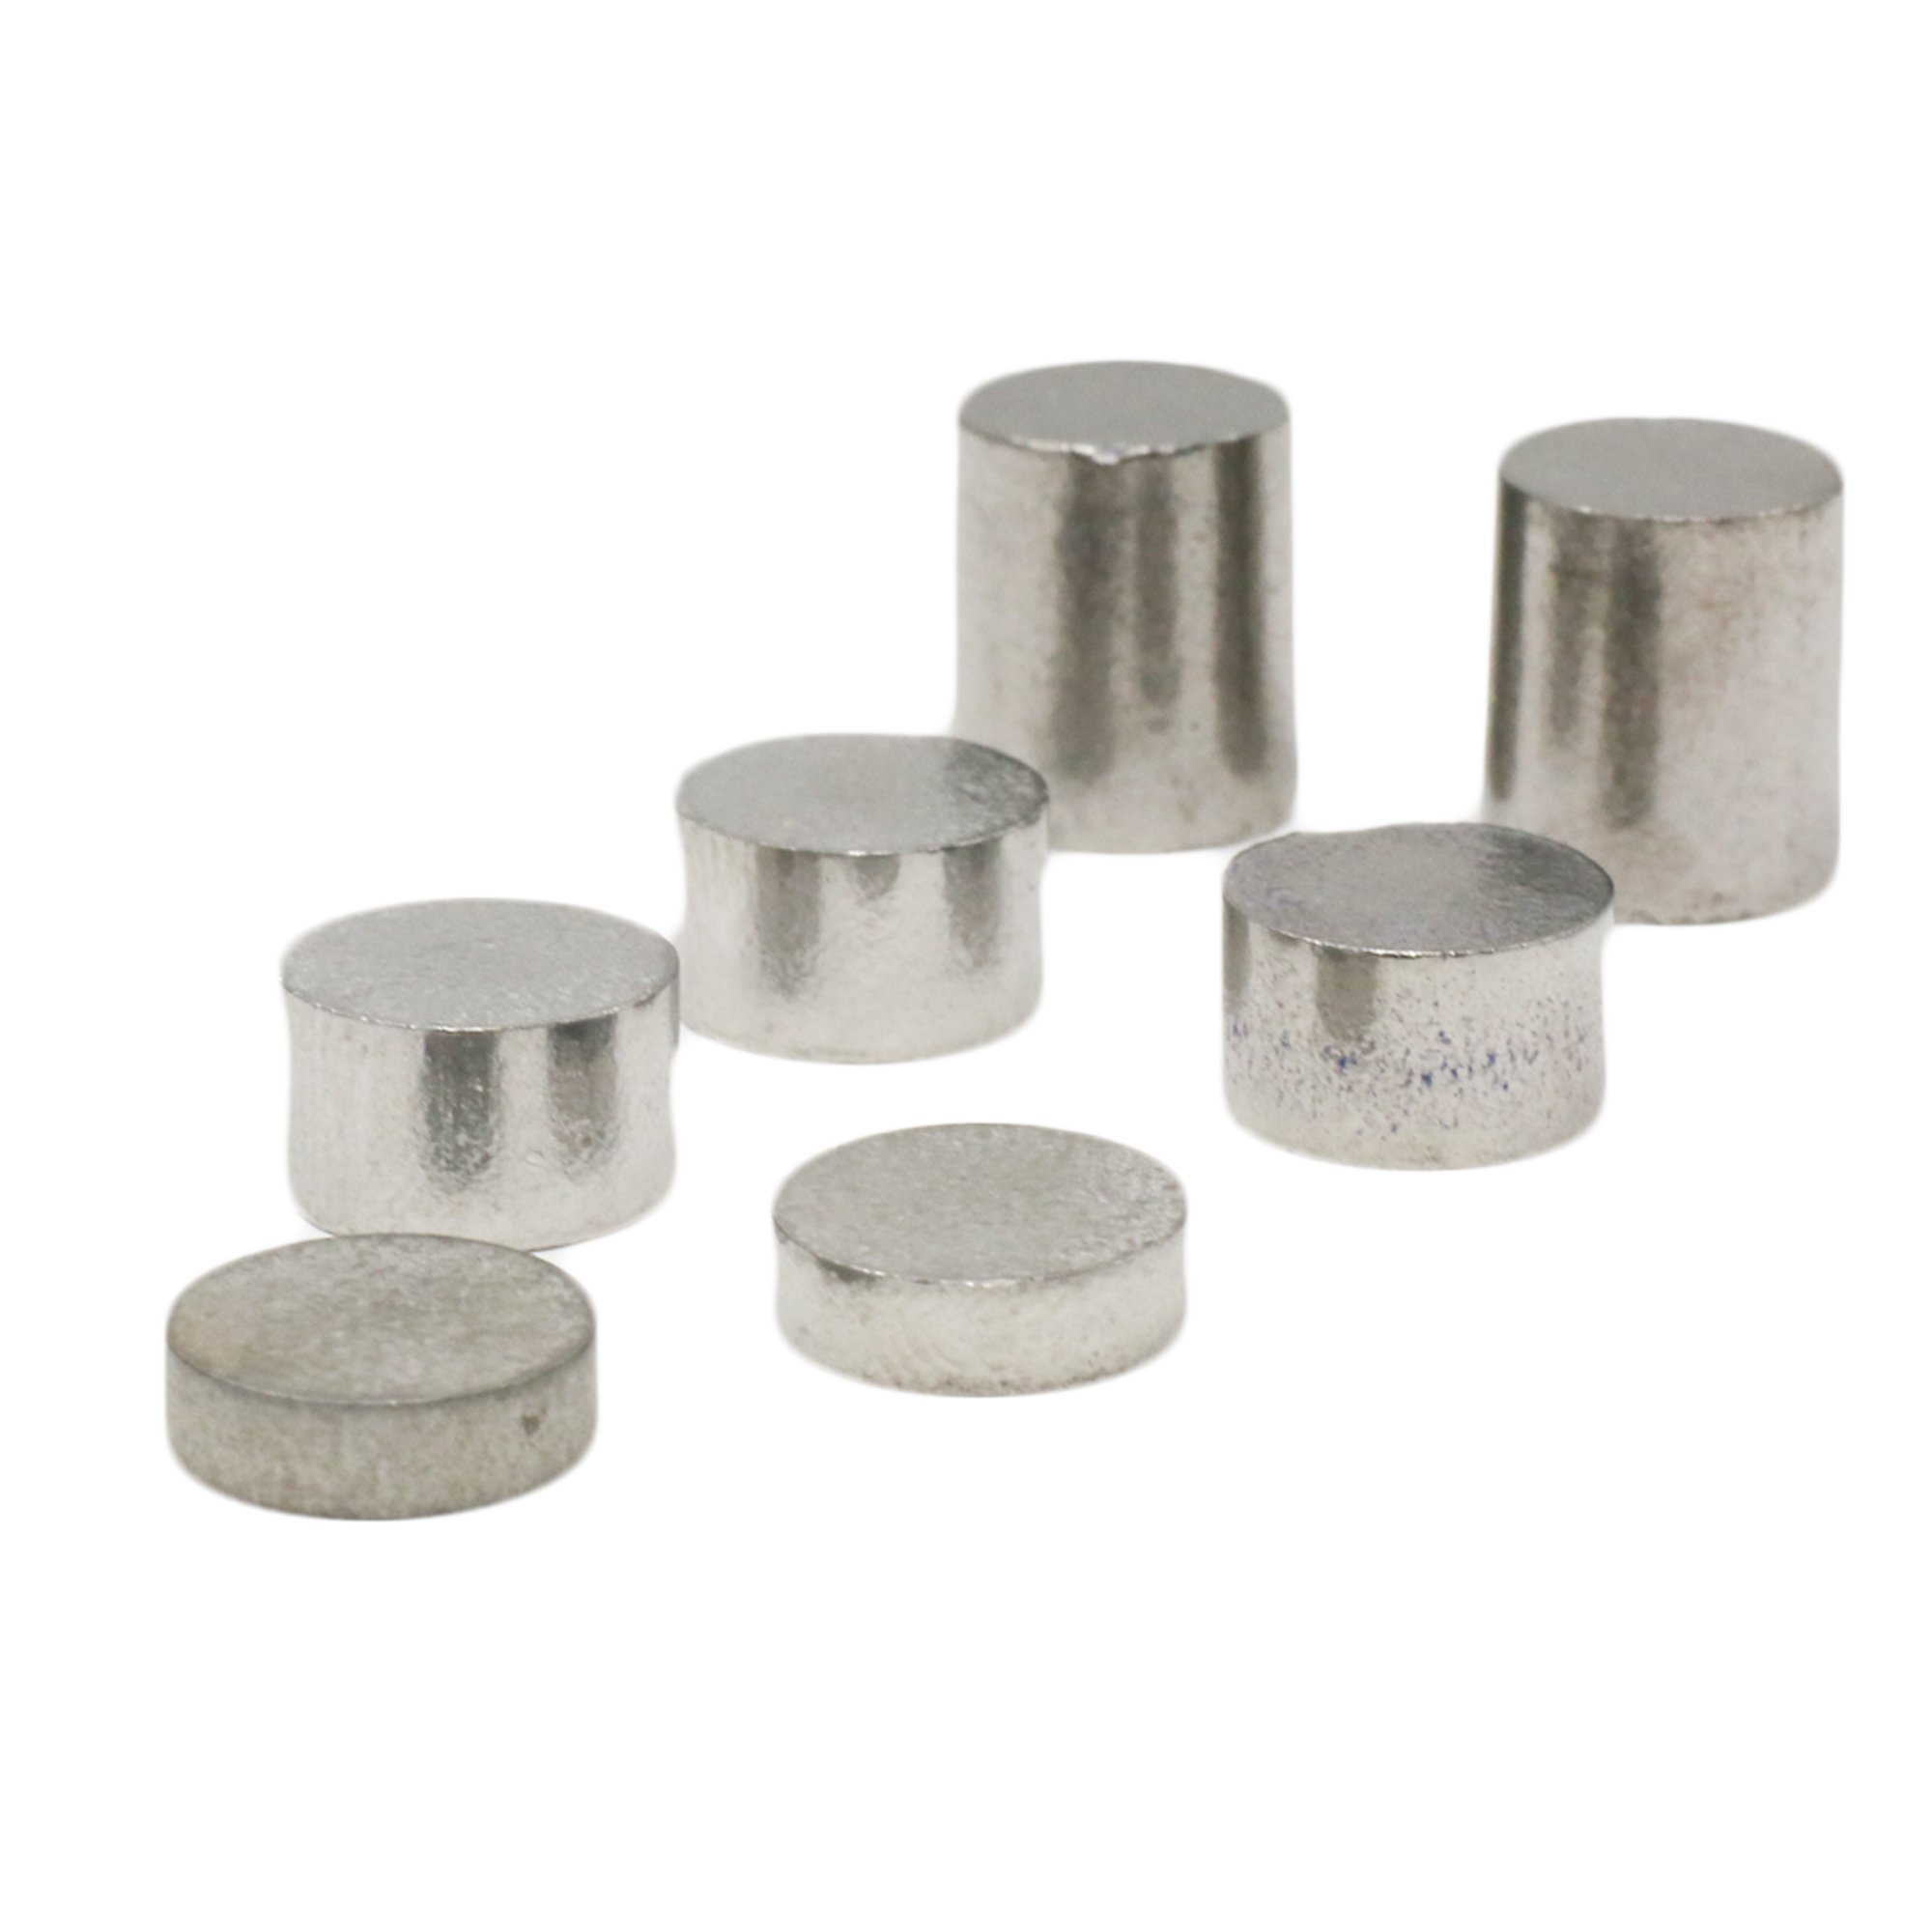 Red Dirt Derby 2 oz Tungsten Pinewood Derby Car Weights - incremental Sizes Enable You to Customize Derby car for Maximum Speed!